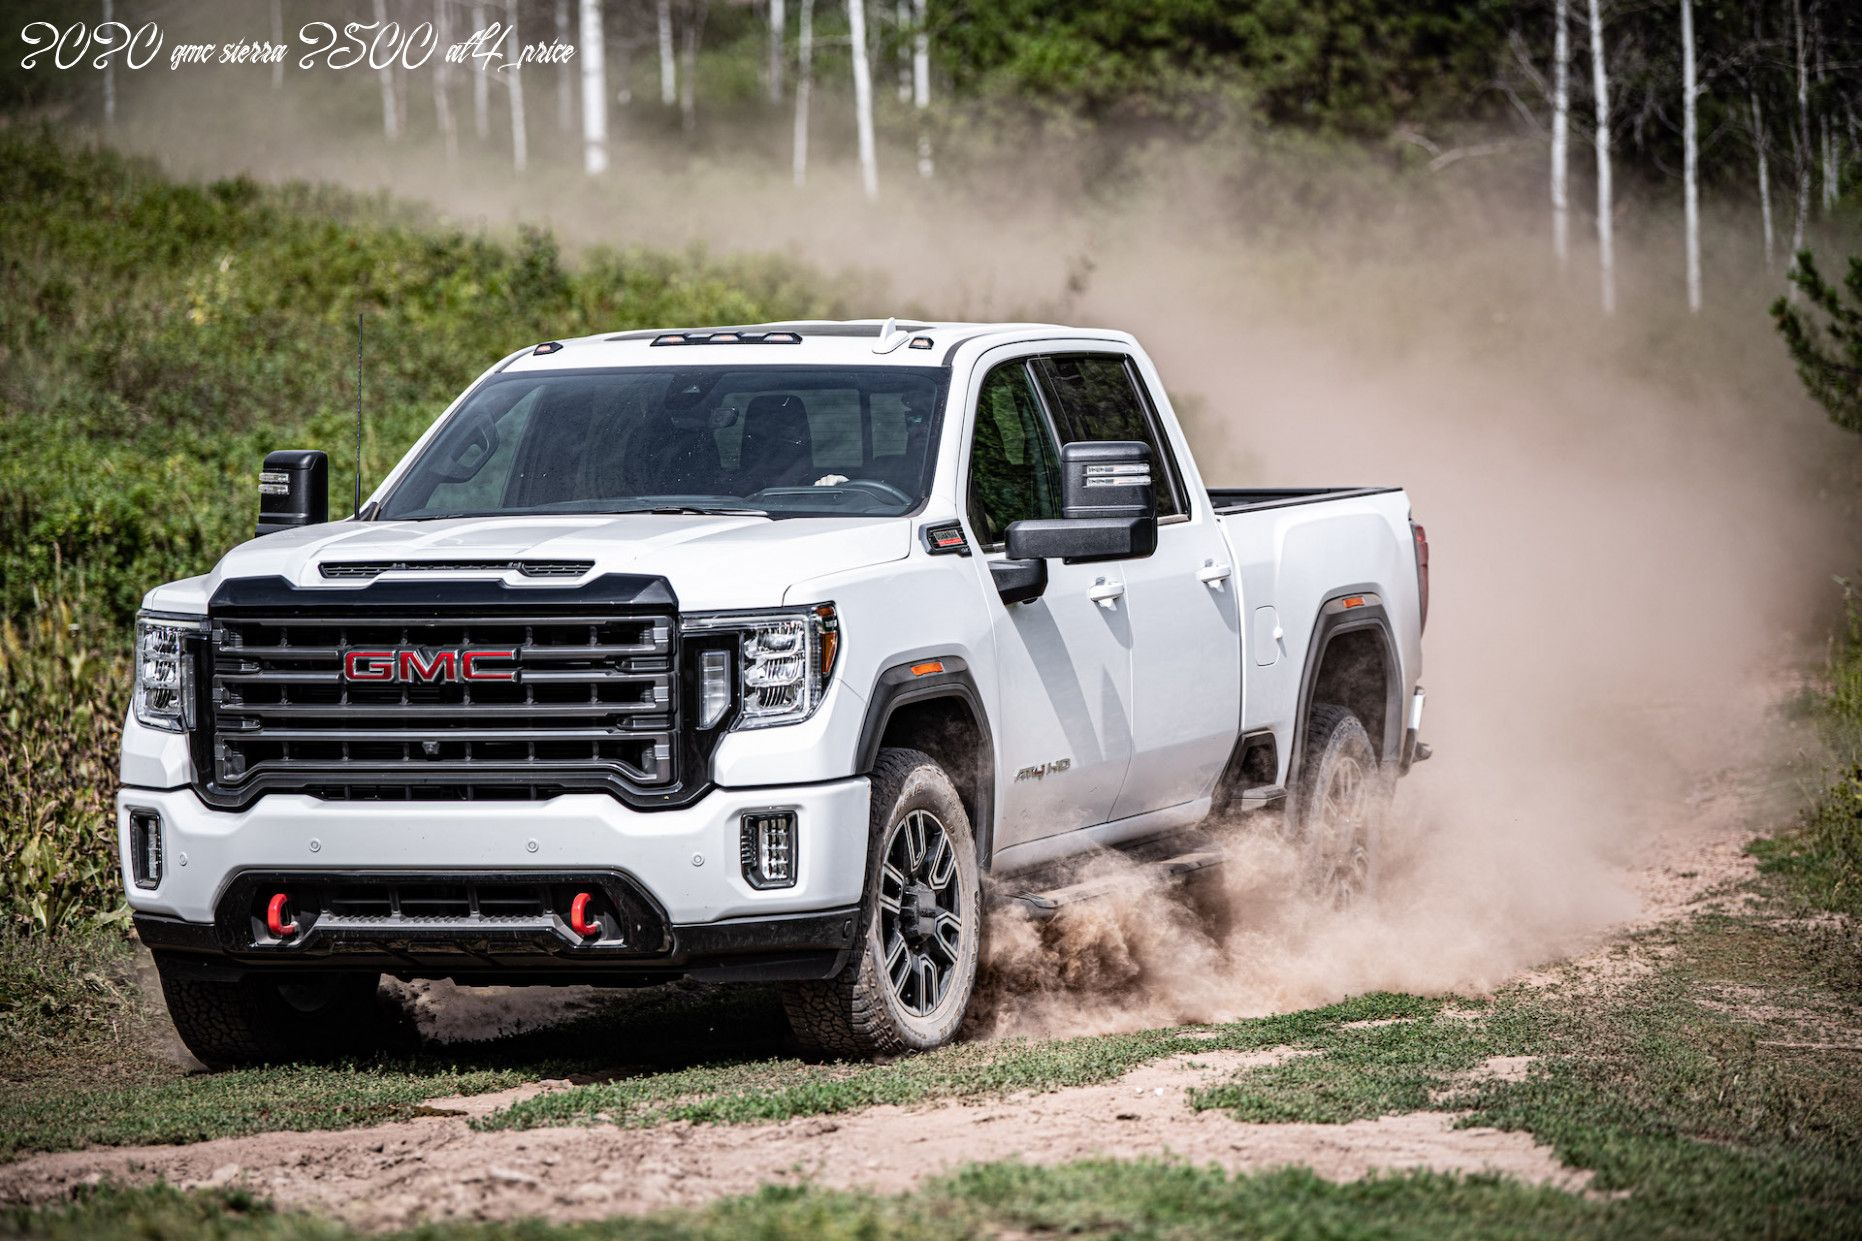 2020 Gmc Sierra 2500 At4 Price In 2020 Gmc 2500 Gmc Sierra 2500hd Gmc